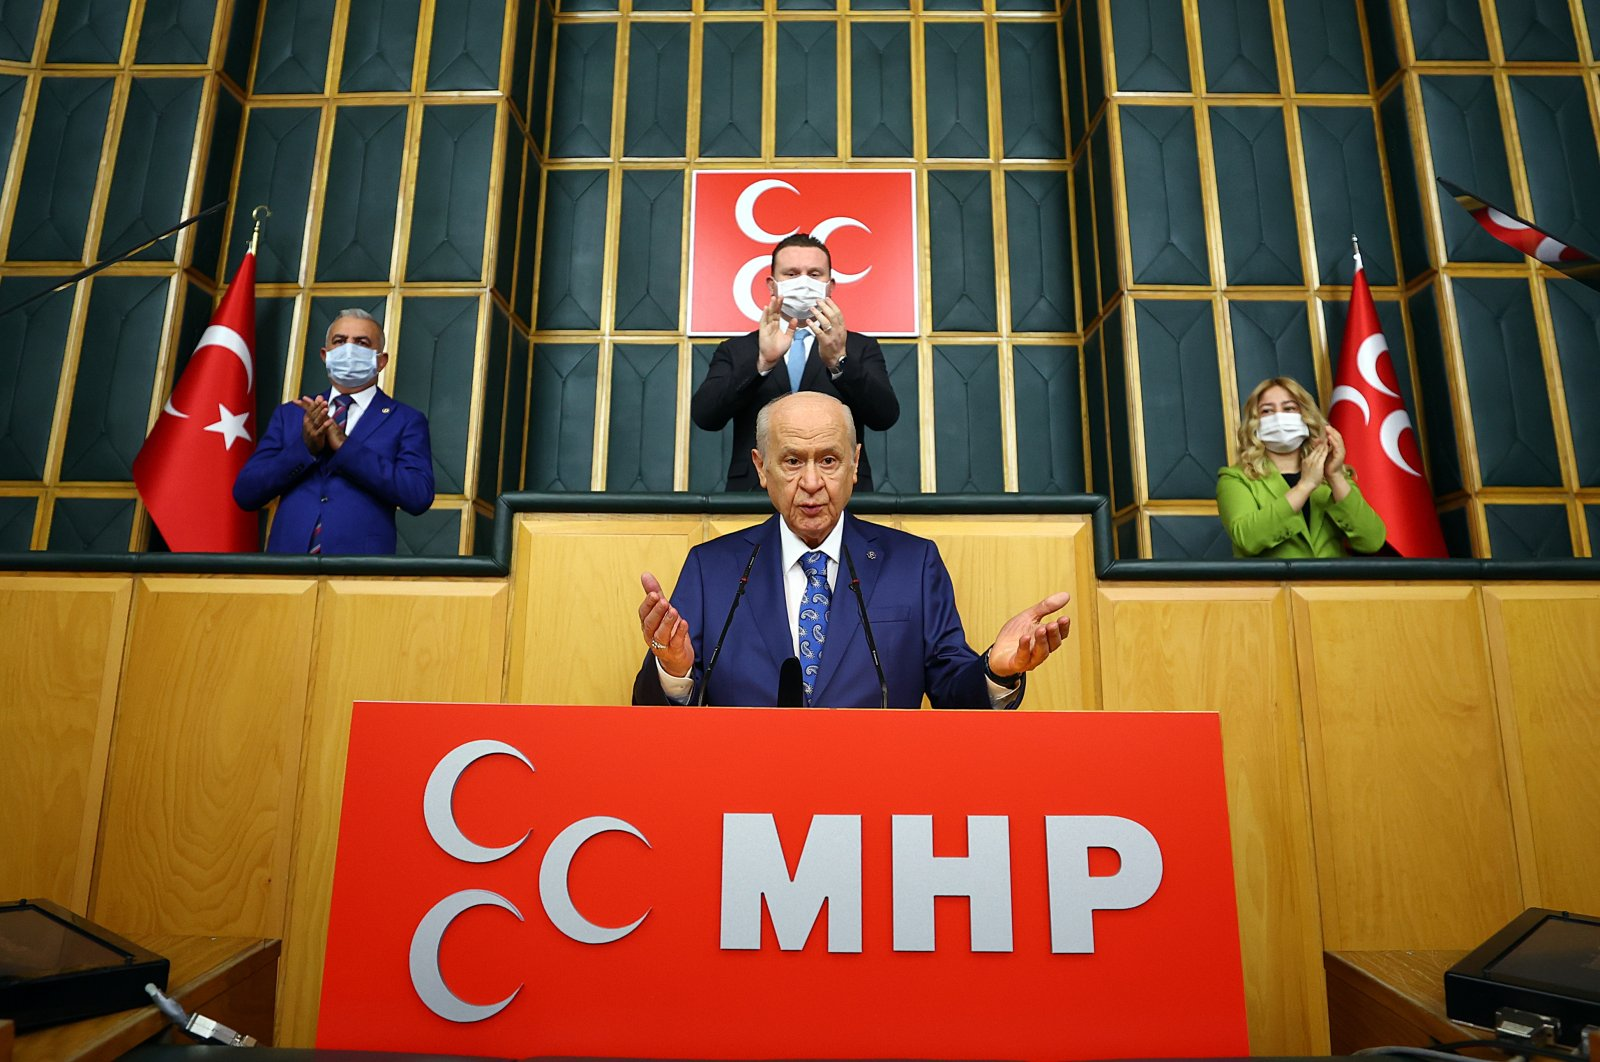 Nationalist Movement Party (MHP) Chairperson Devlet Bahçeli gestures as he speaks at his party's parliamentary group meeting at the Turkish Parliament in Ankara, Turkey, July 6, 2021. (AA Photo)